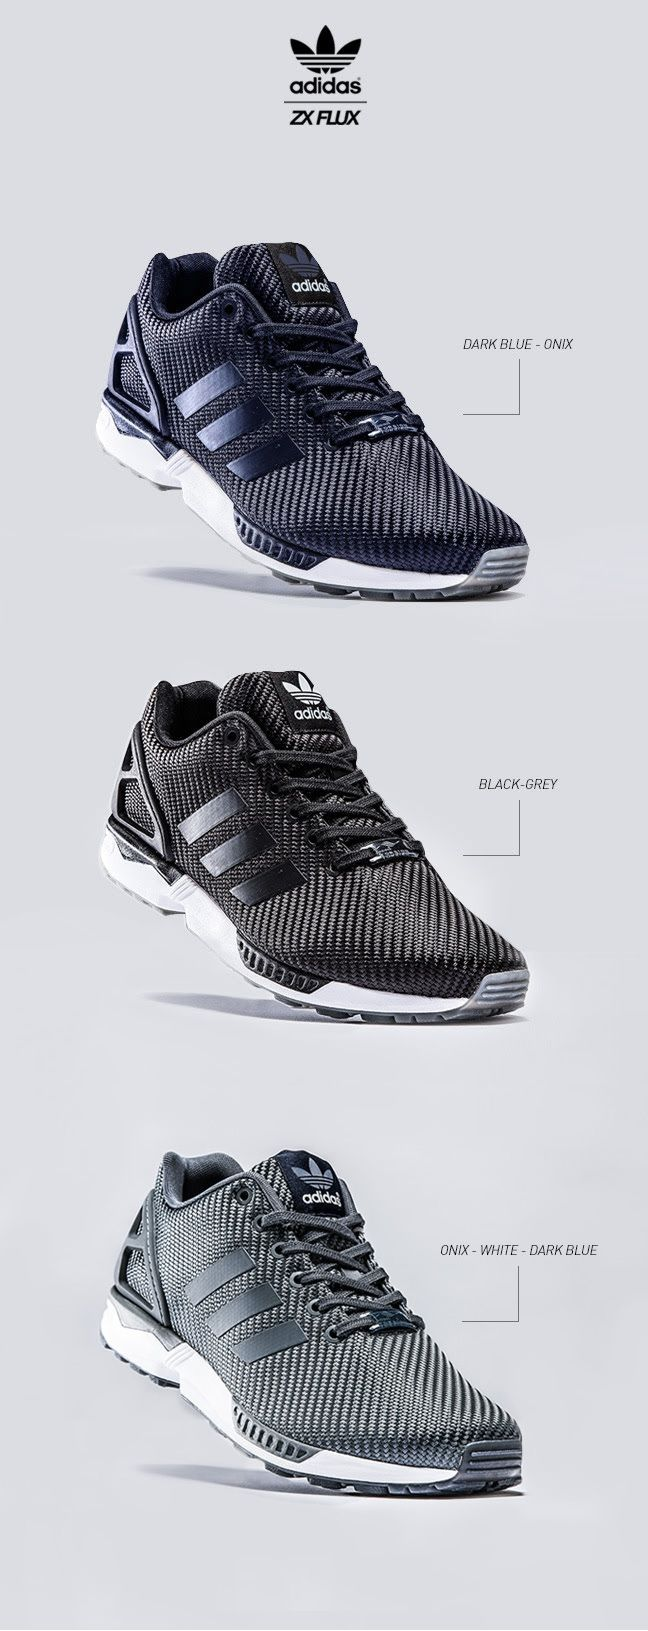 adidas ZX Flux Woven | Raddest Men's Fashion Looks On The Internet…